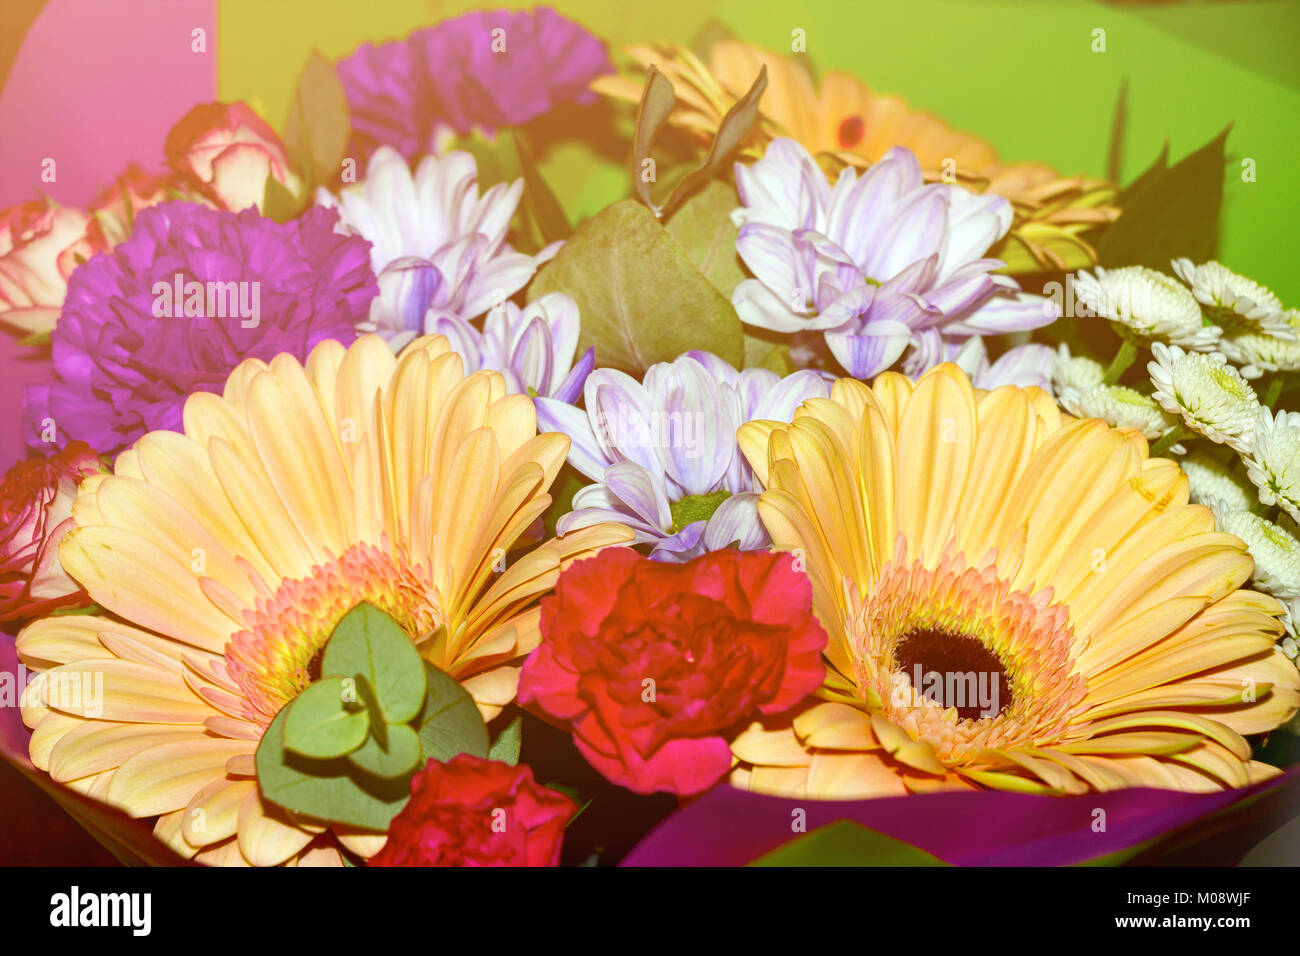 Bouquet of different flowers in sunlight stock photo 172299415 alamy bouquet of different flowers in sunlight izmirmasajfo